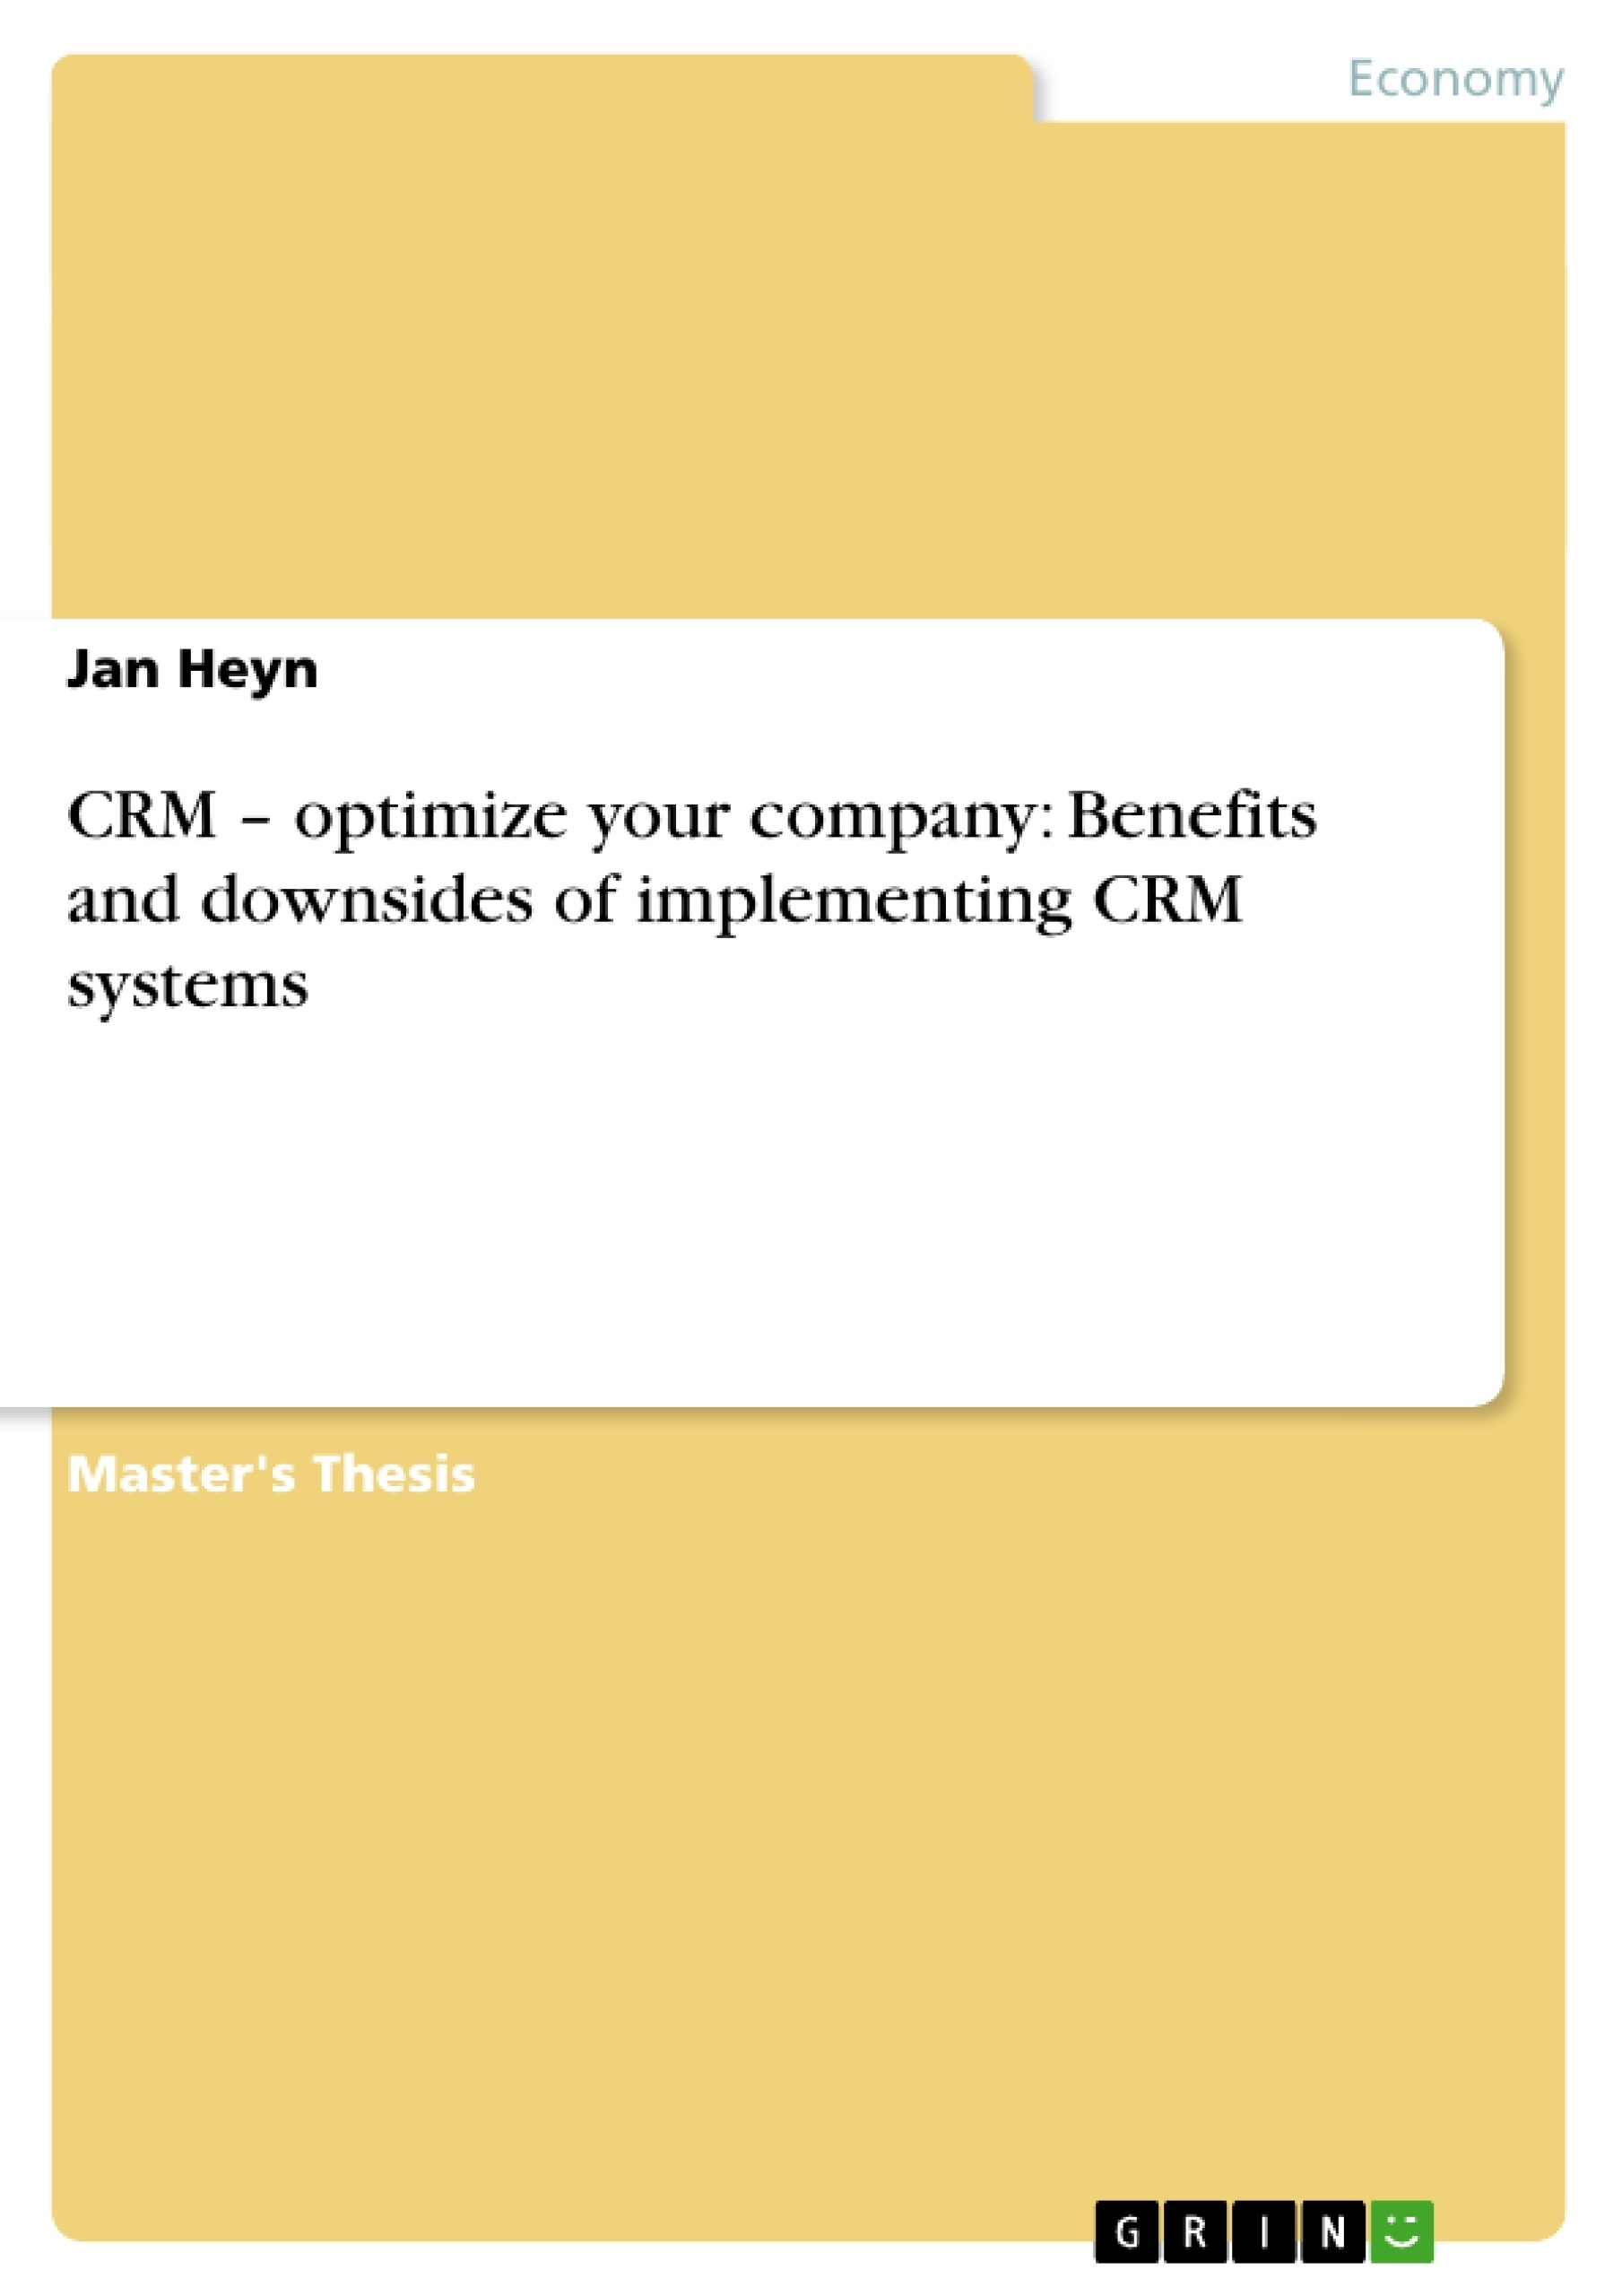 Title: CRM – optimize your company: Benefits and downsides of implementing CRM systems